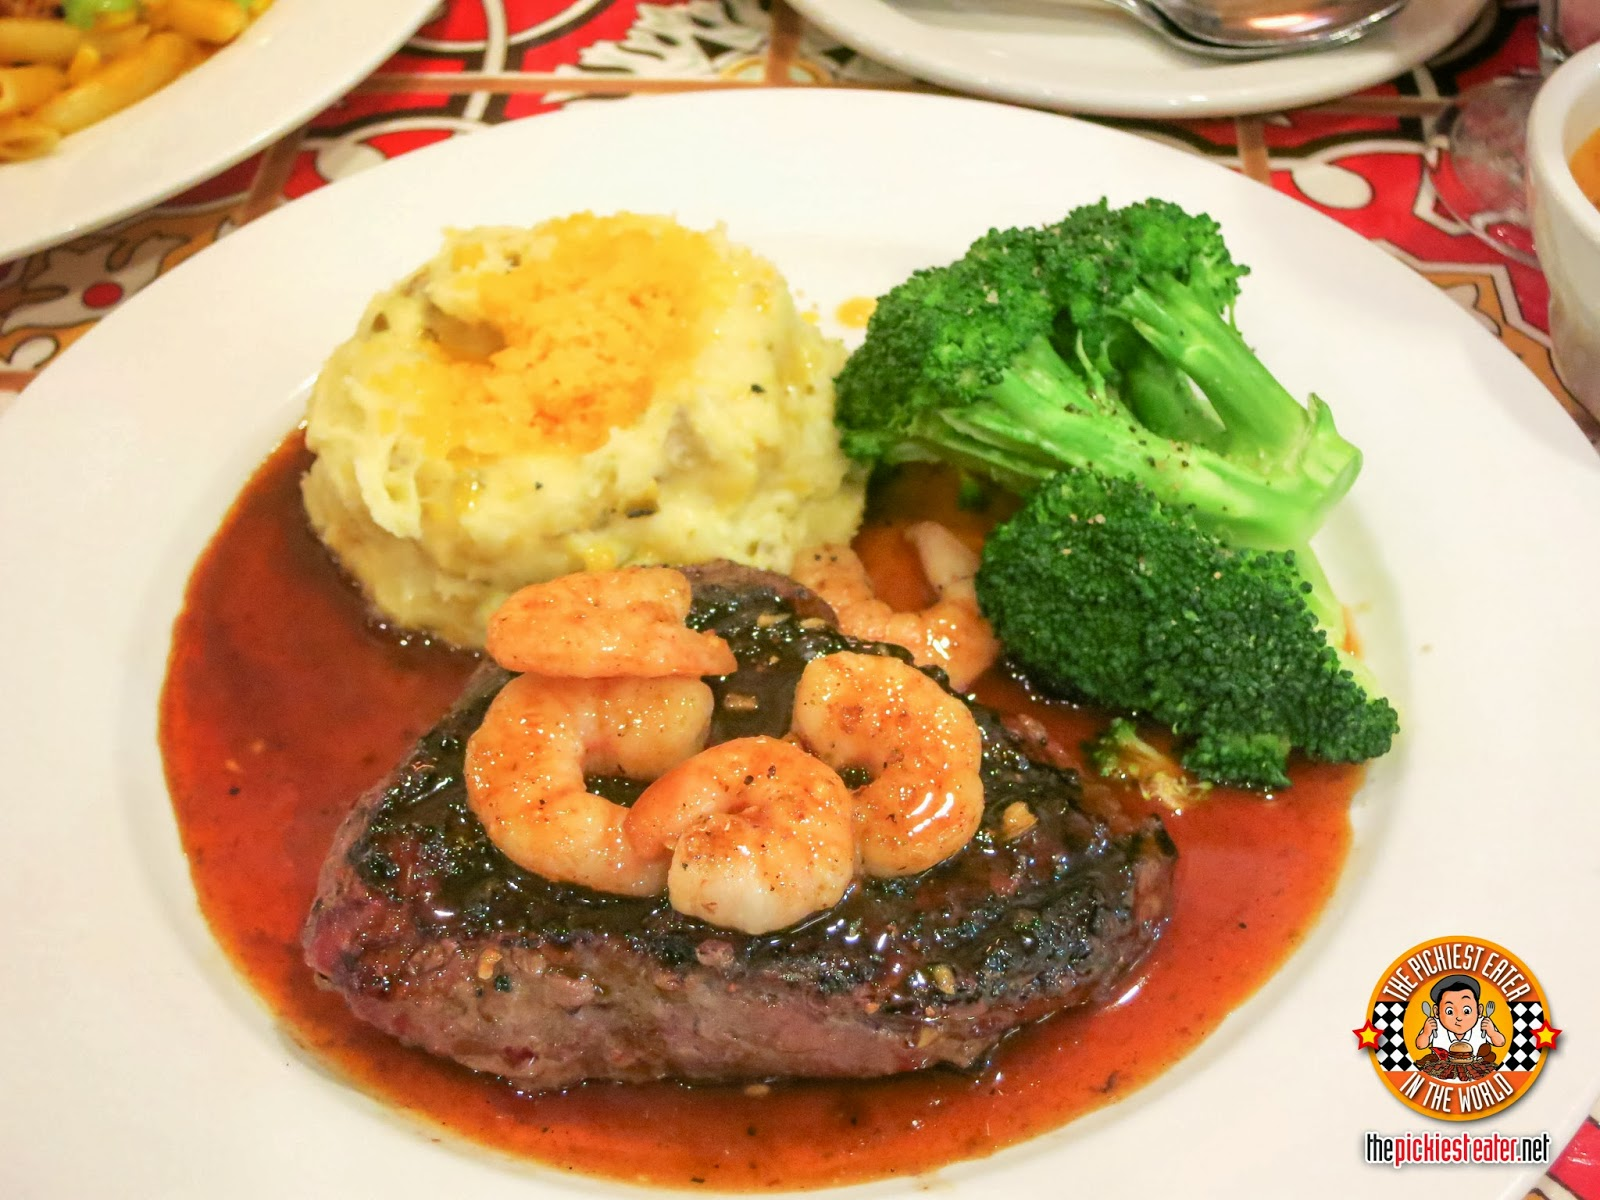 Steak with Chile Lime Shrimp